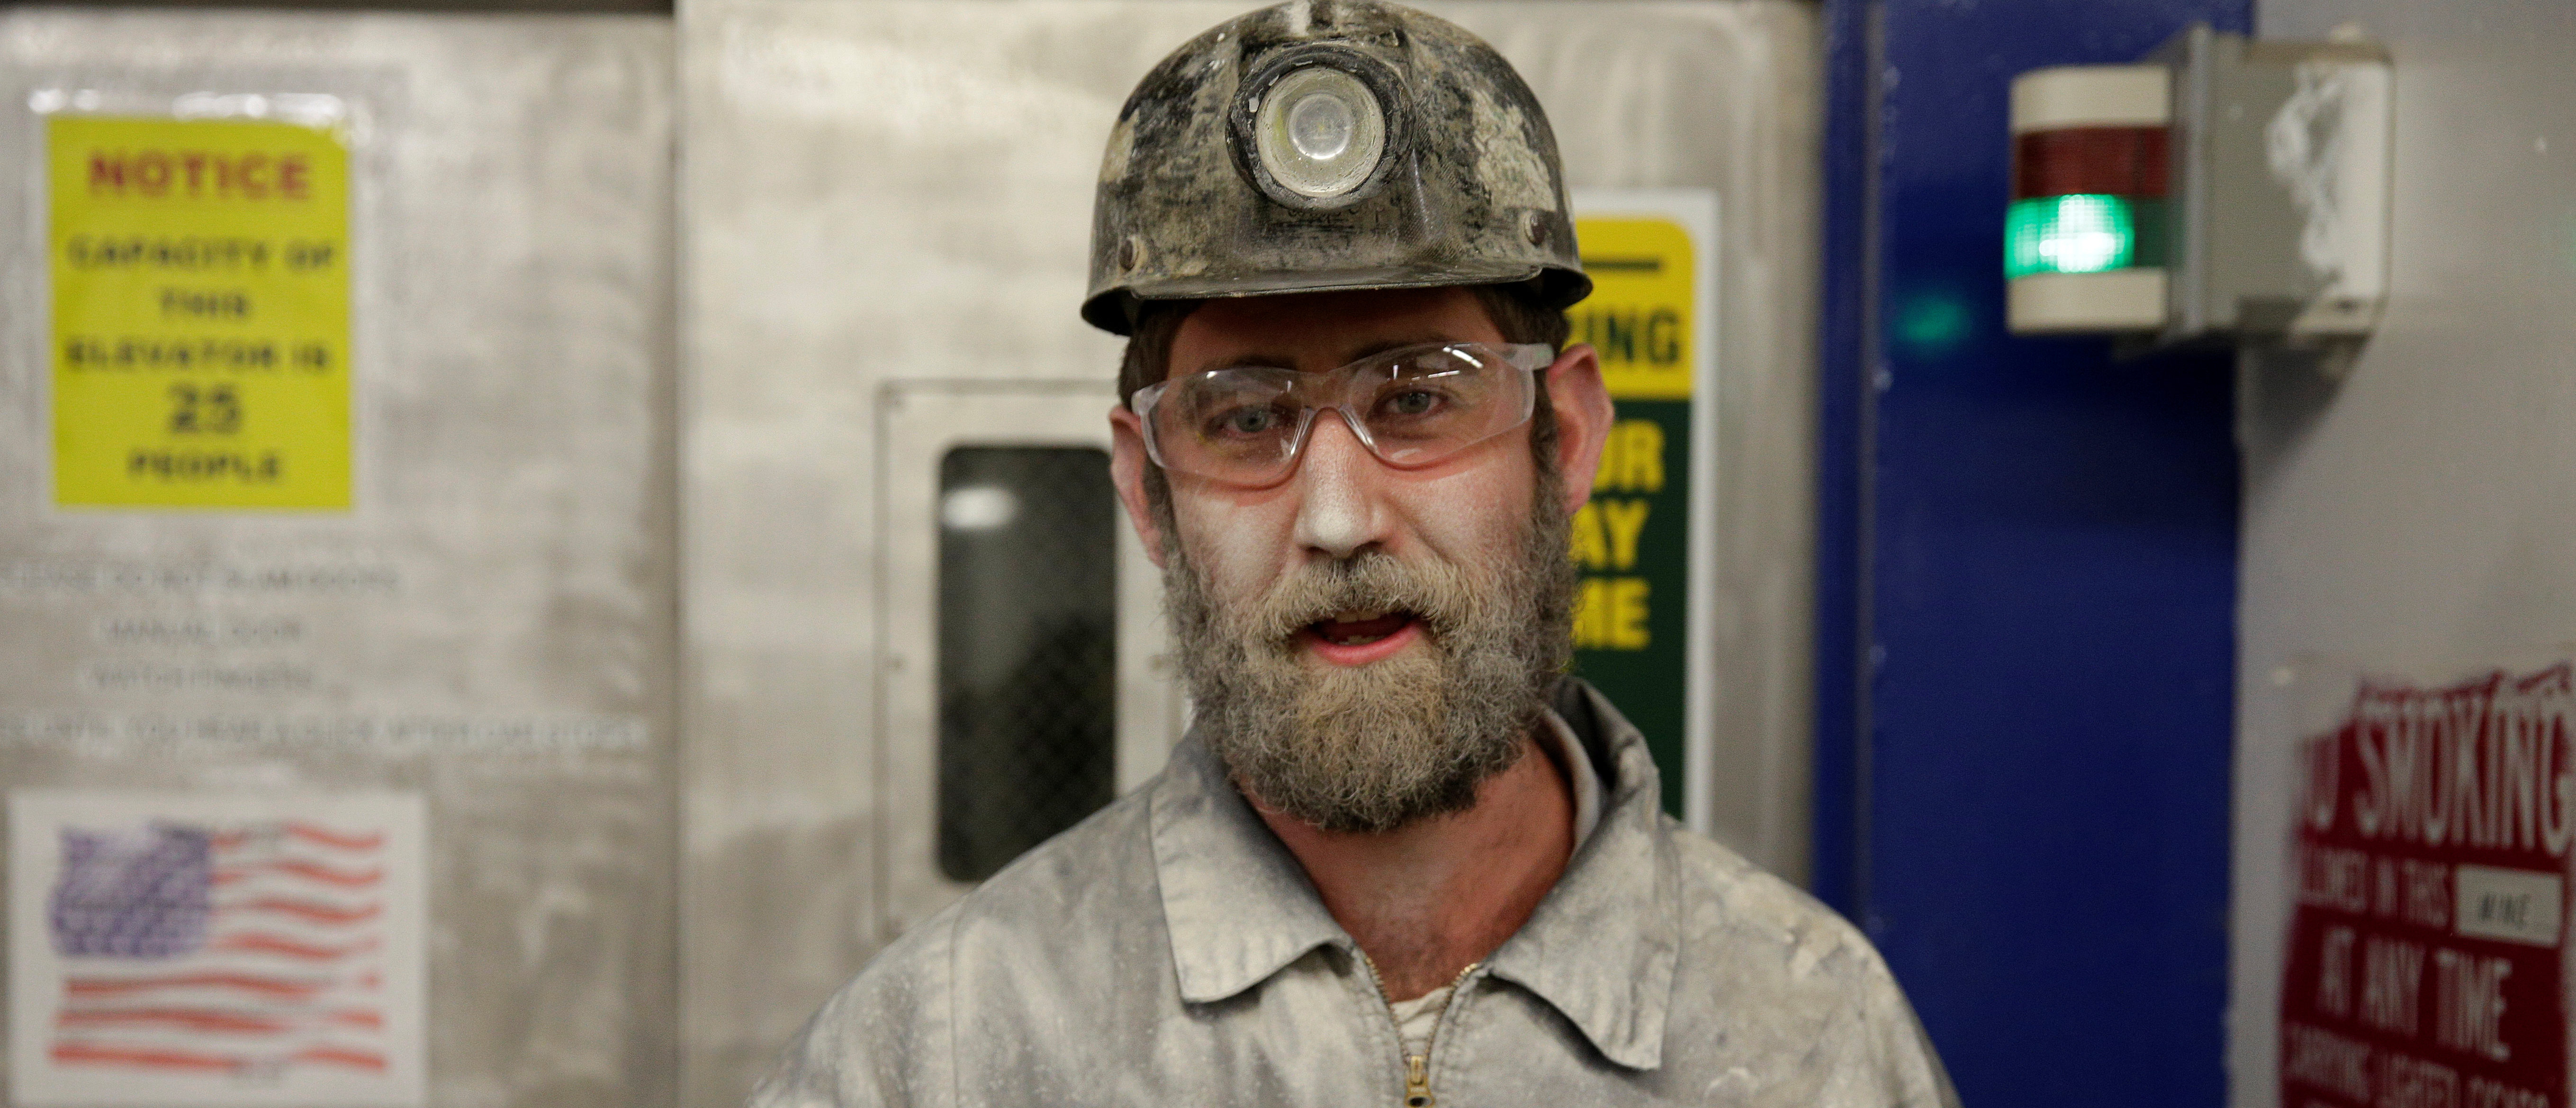 Brian Tingler, 38, stands covered in dust after his shift at the American Energy Corporation Century Mine in Beallsville, Ohio, November 7, 2017. REUTERS/Joshua Roberts